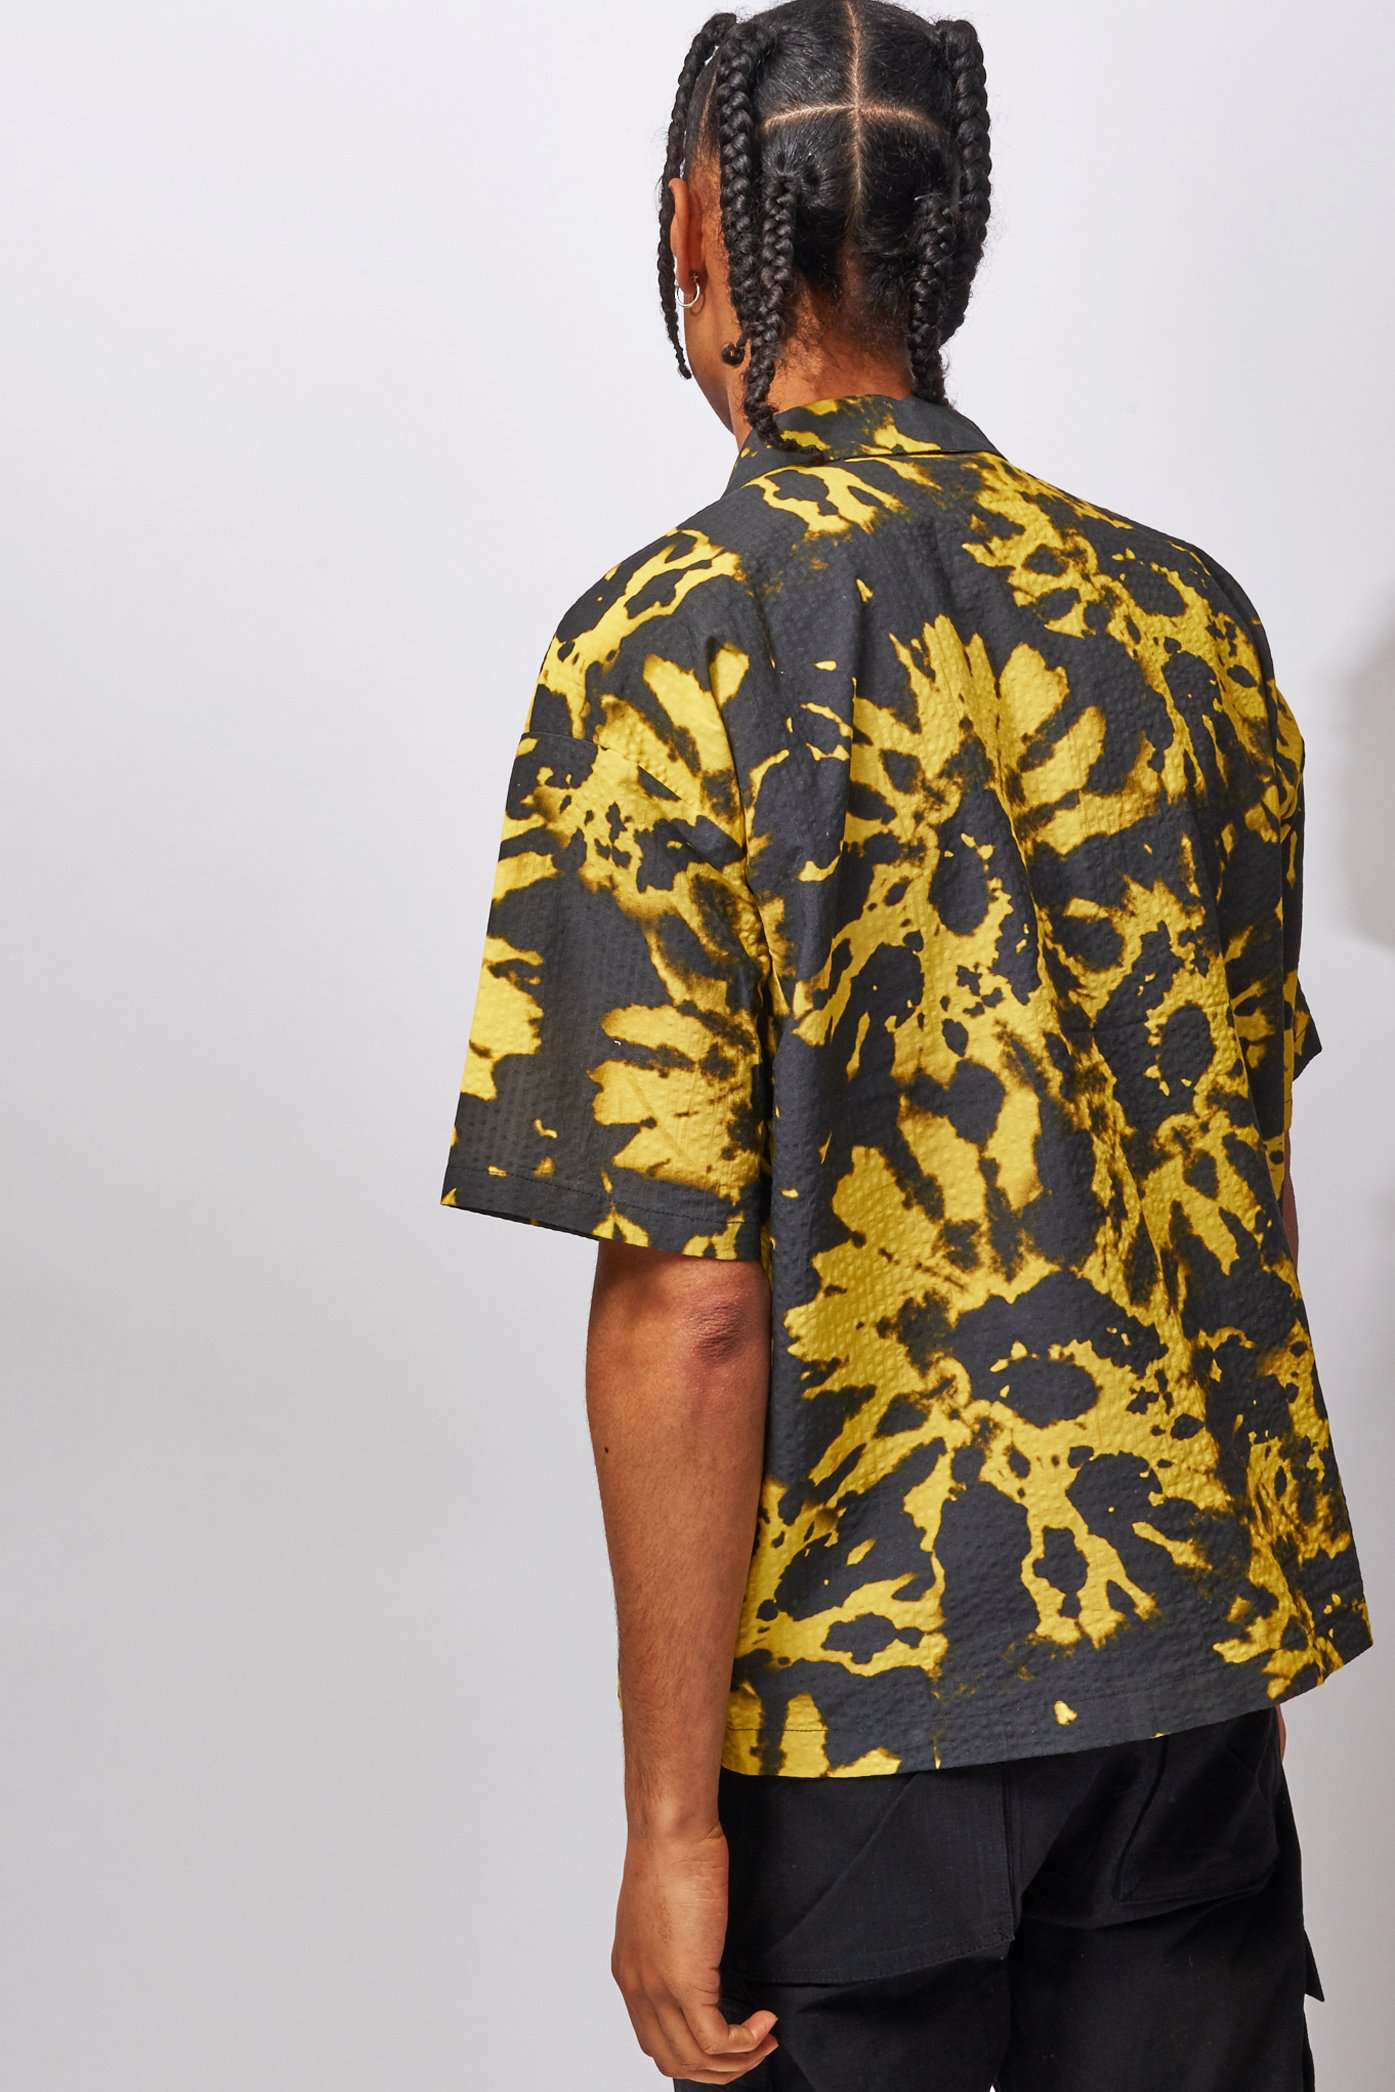 Black & Yellow Tie Dye Shirt With Utility Pockets